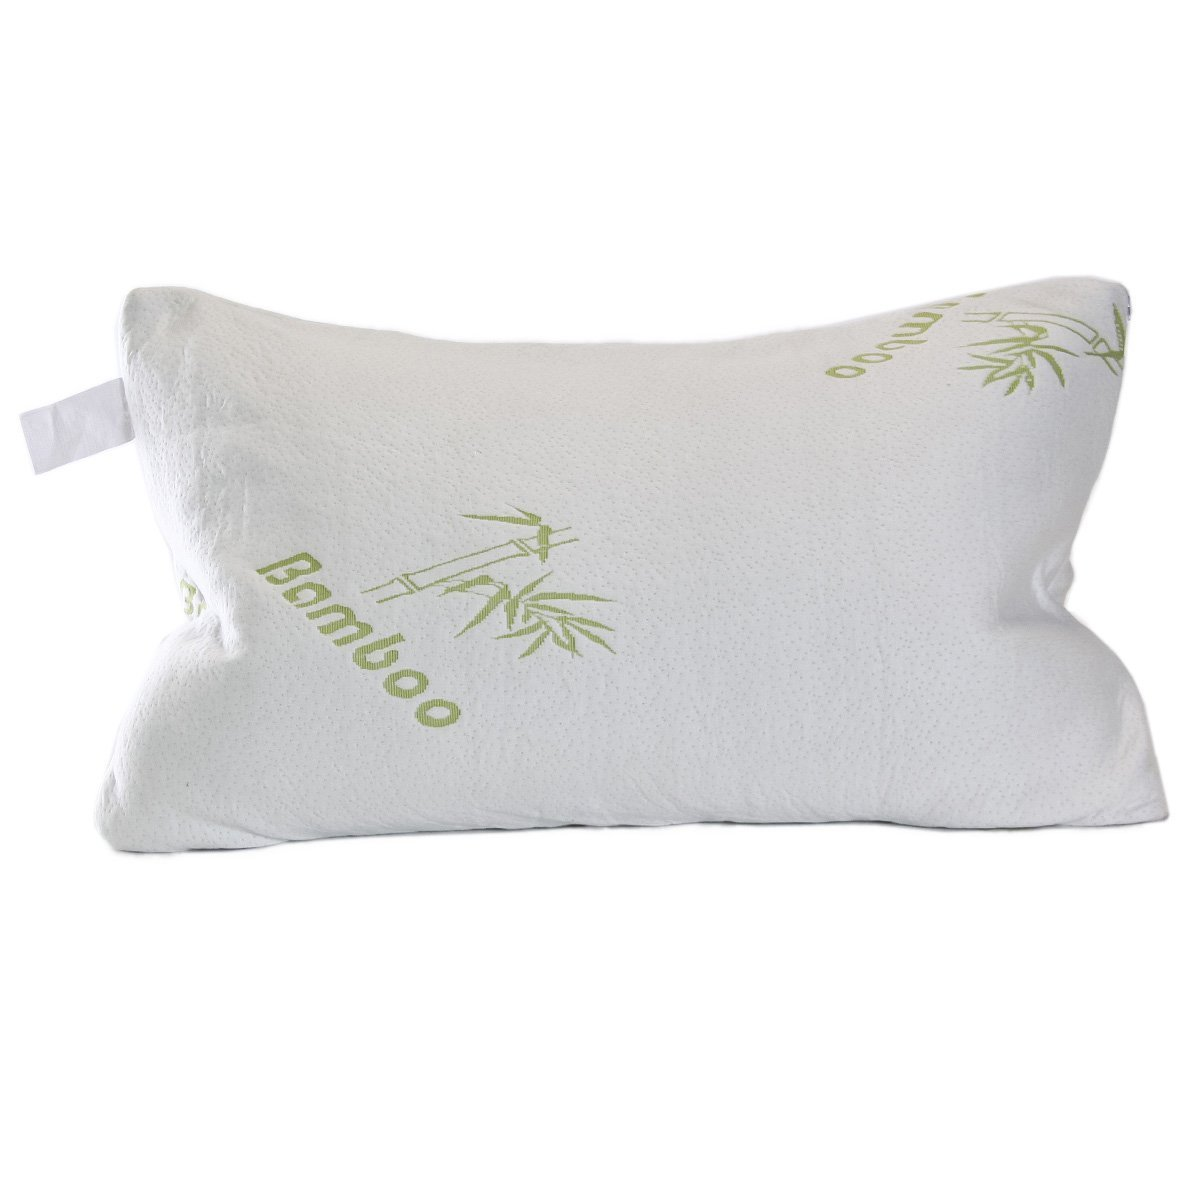 Original Bamboo Shredded Pillow